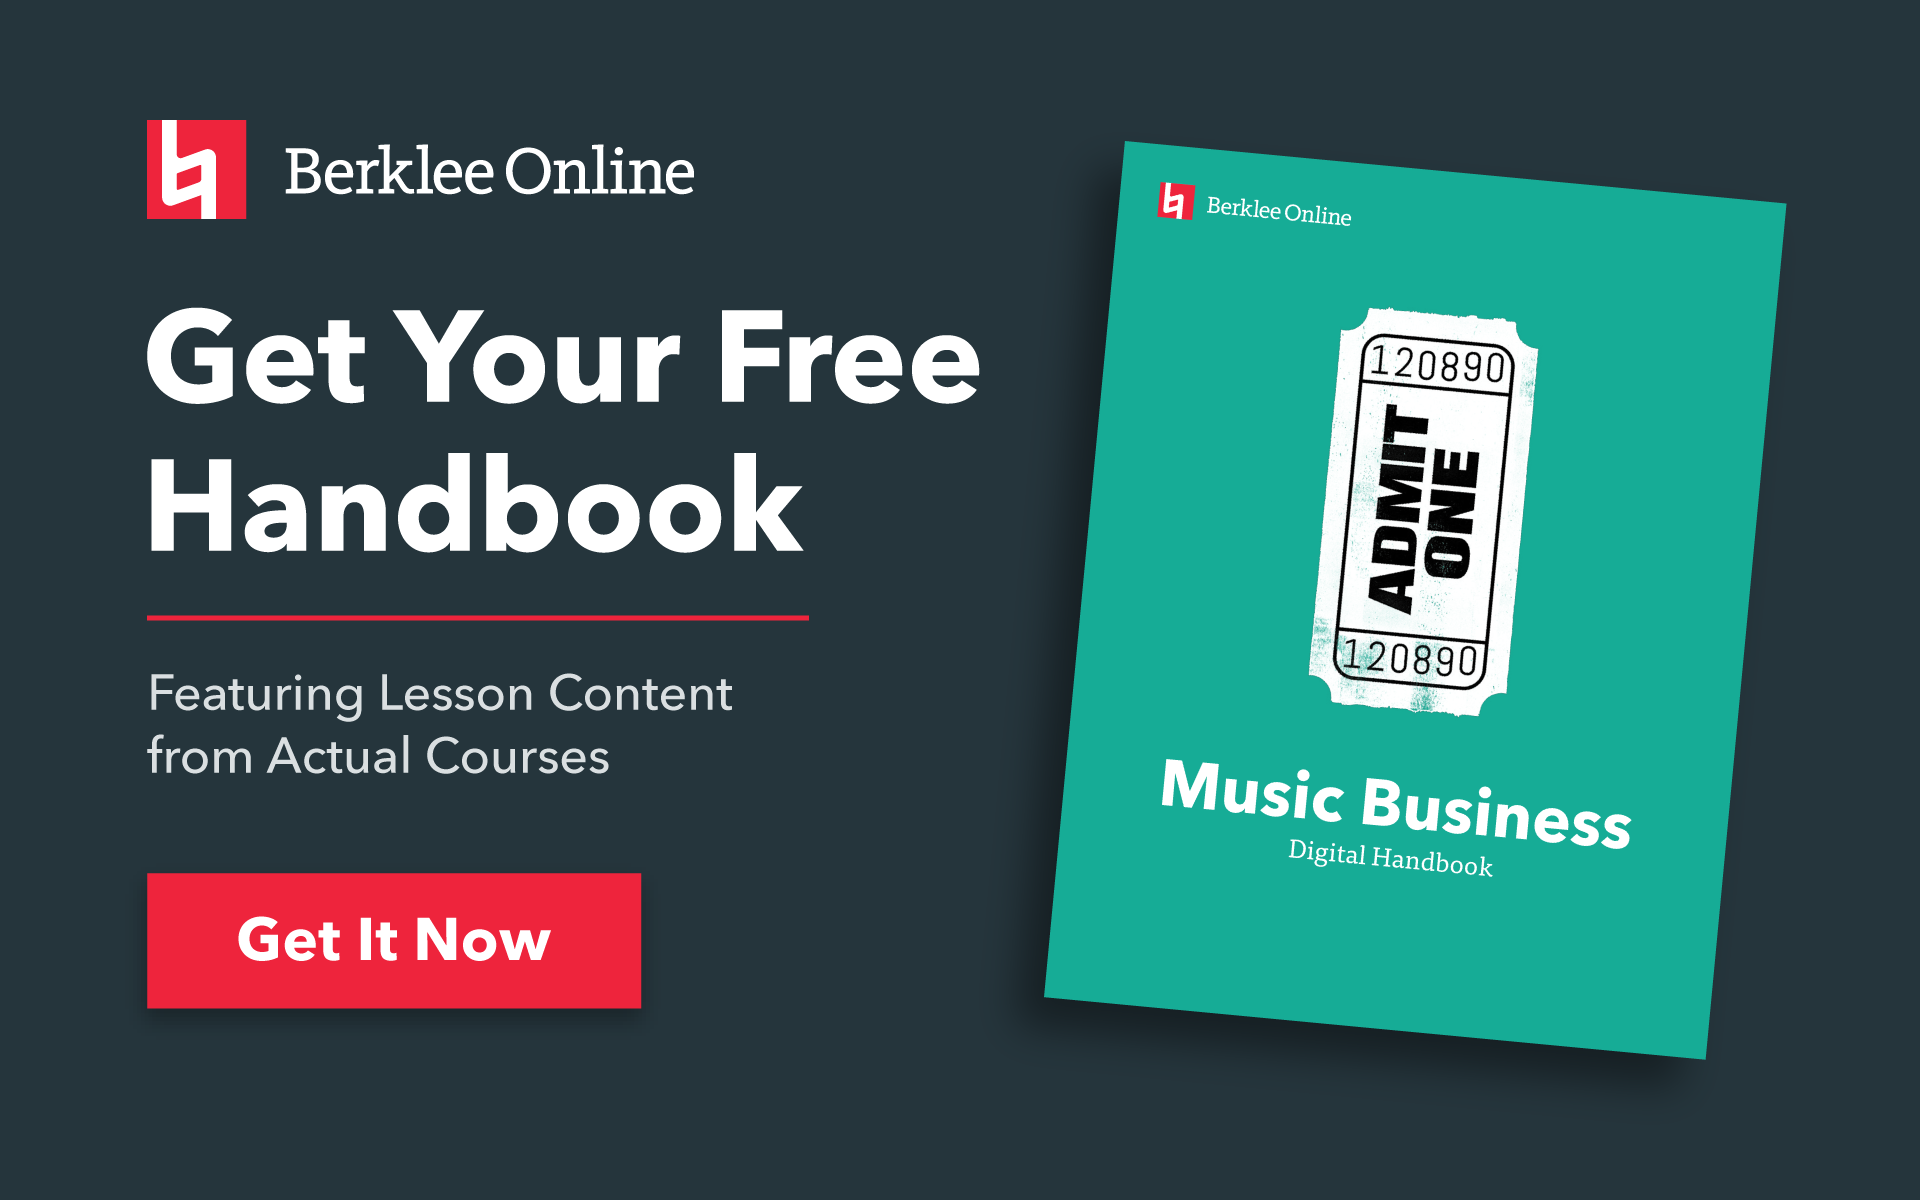 Get your free music business handbook from Berklee Online.